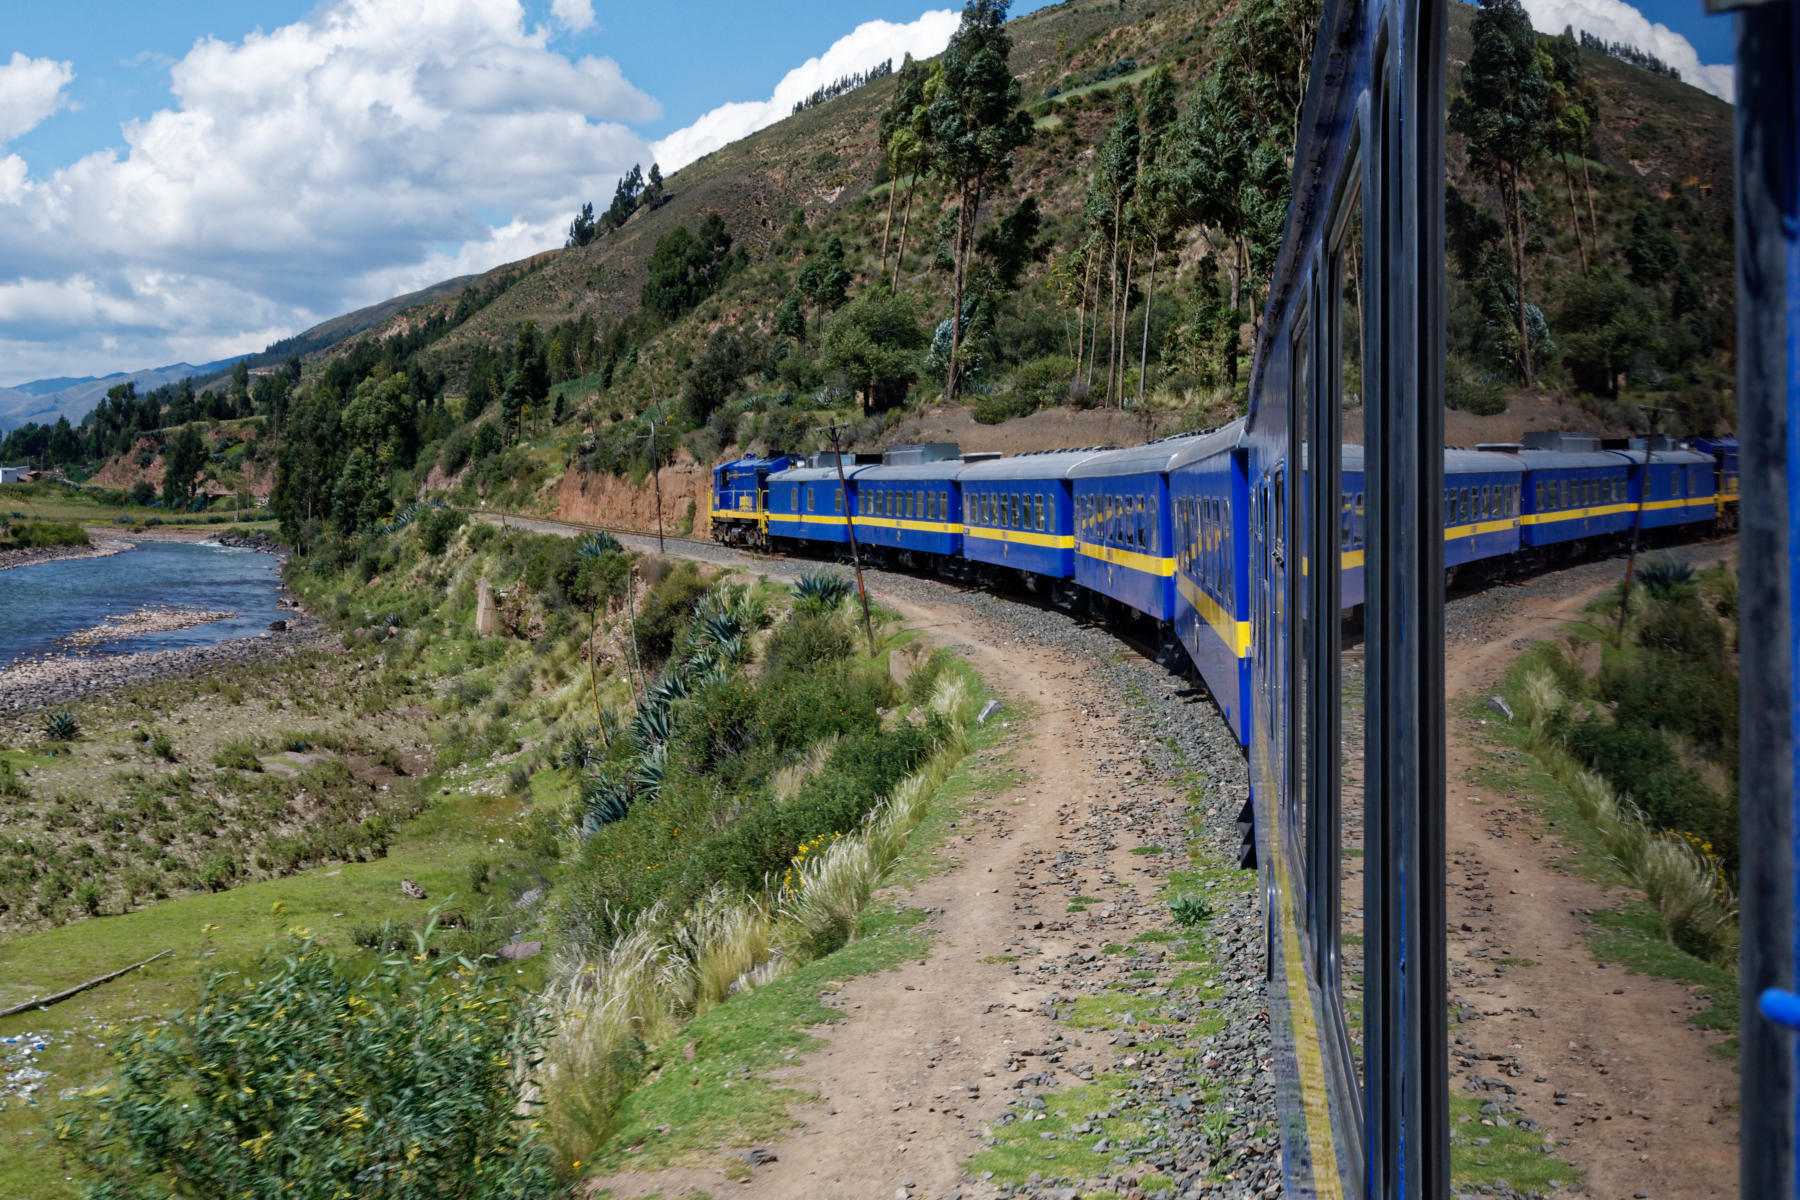 The Titicaca Train rounds a bend